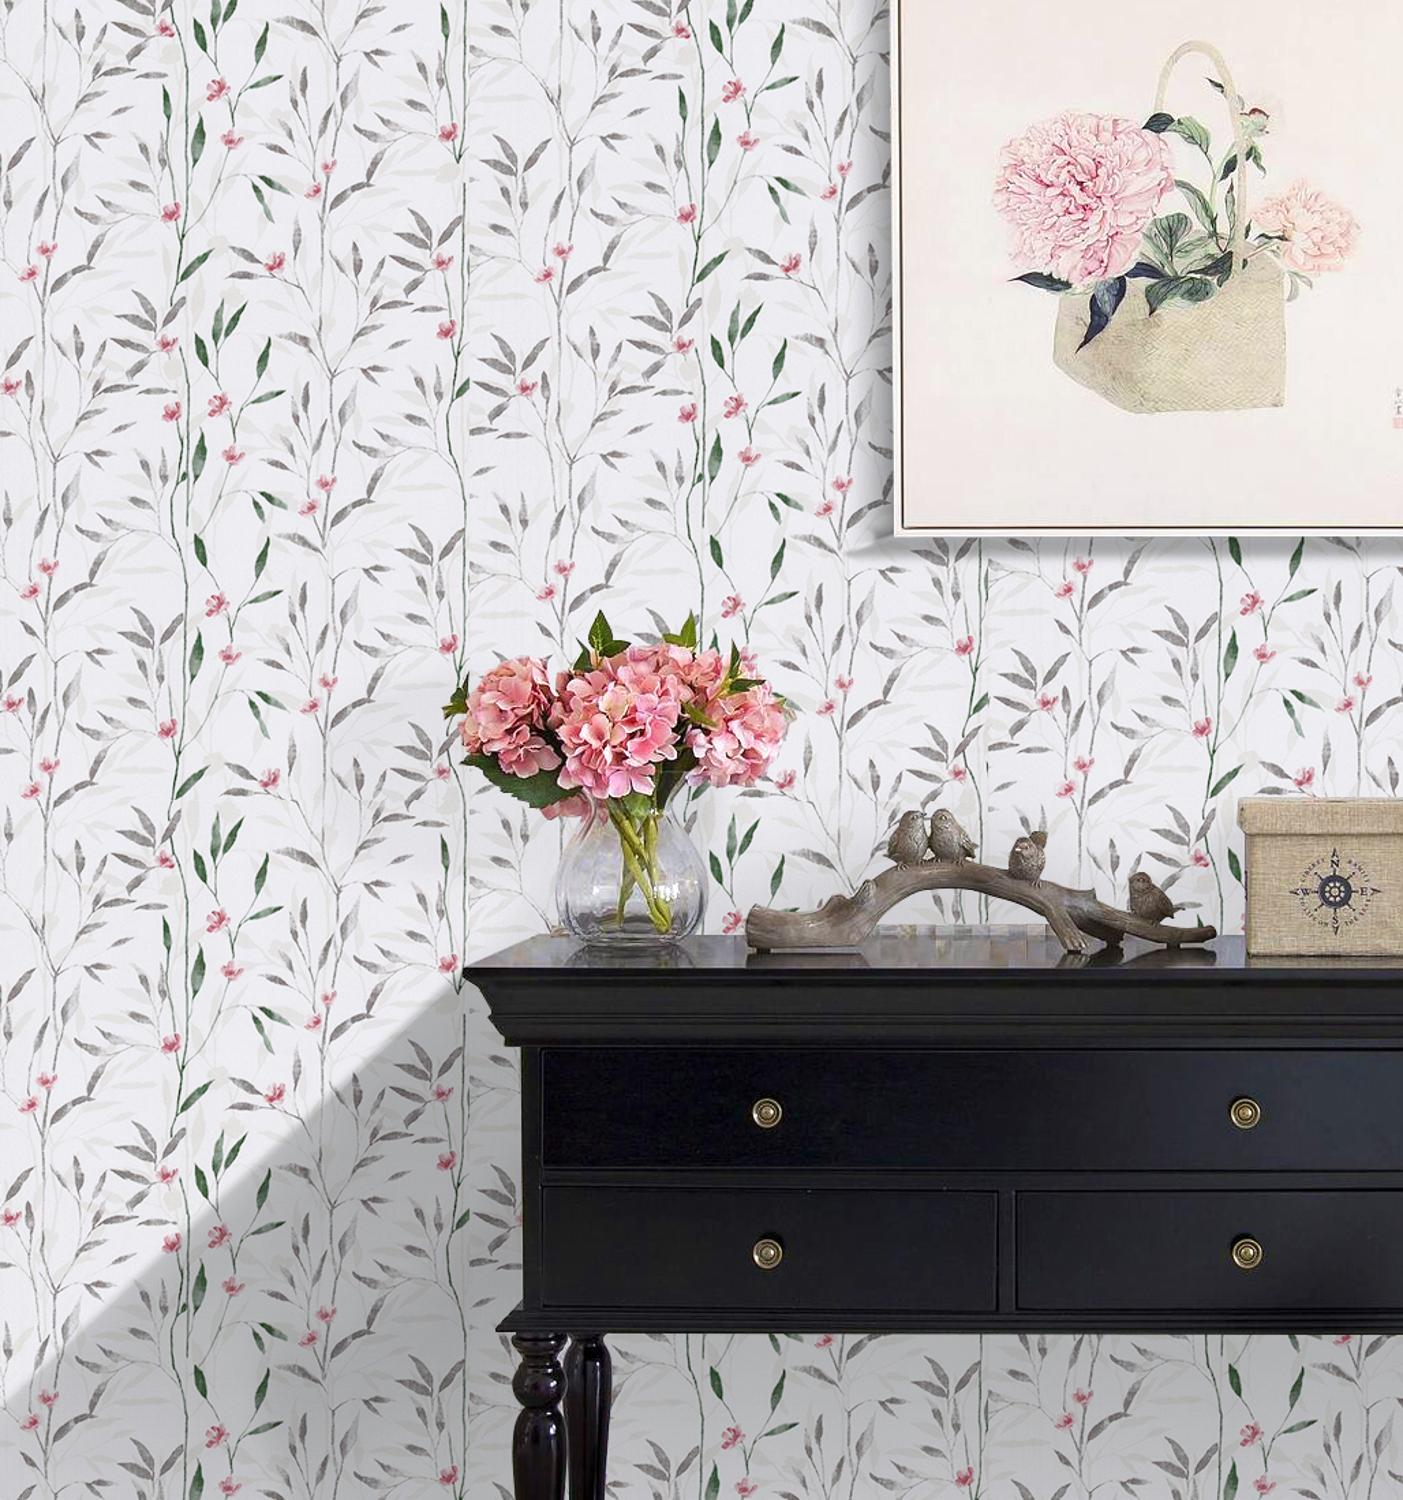 Haokhome Victoria Floral Wallpaper Wall Murals Beige Green Red